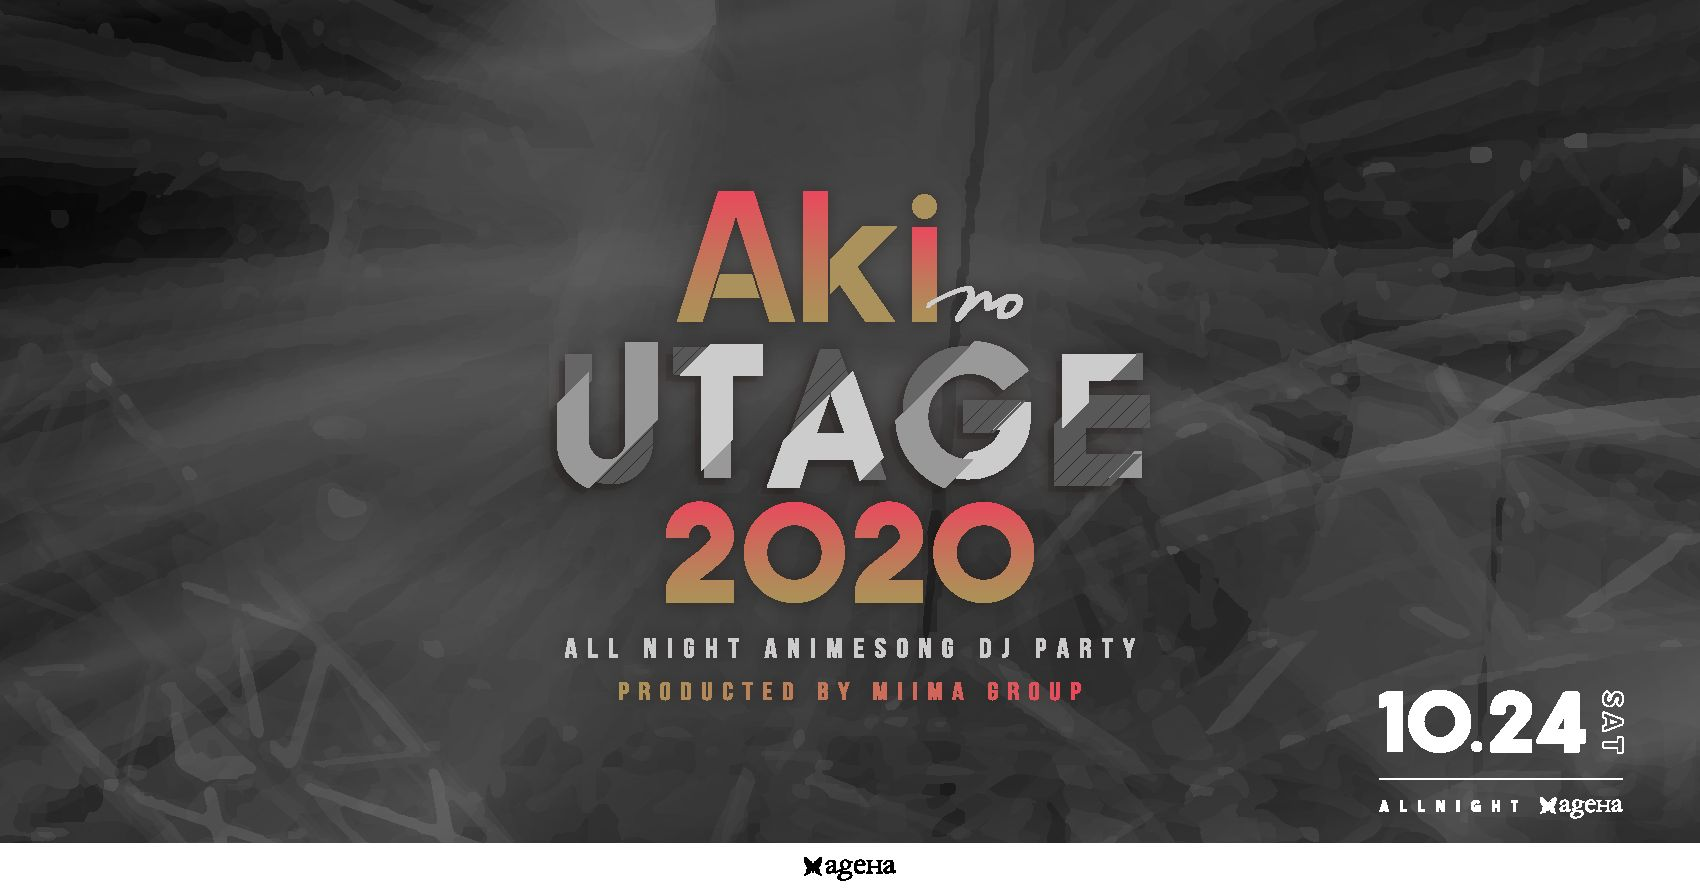 Aki no Utage autumn event banner grey and red